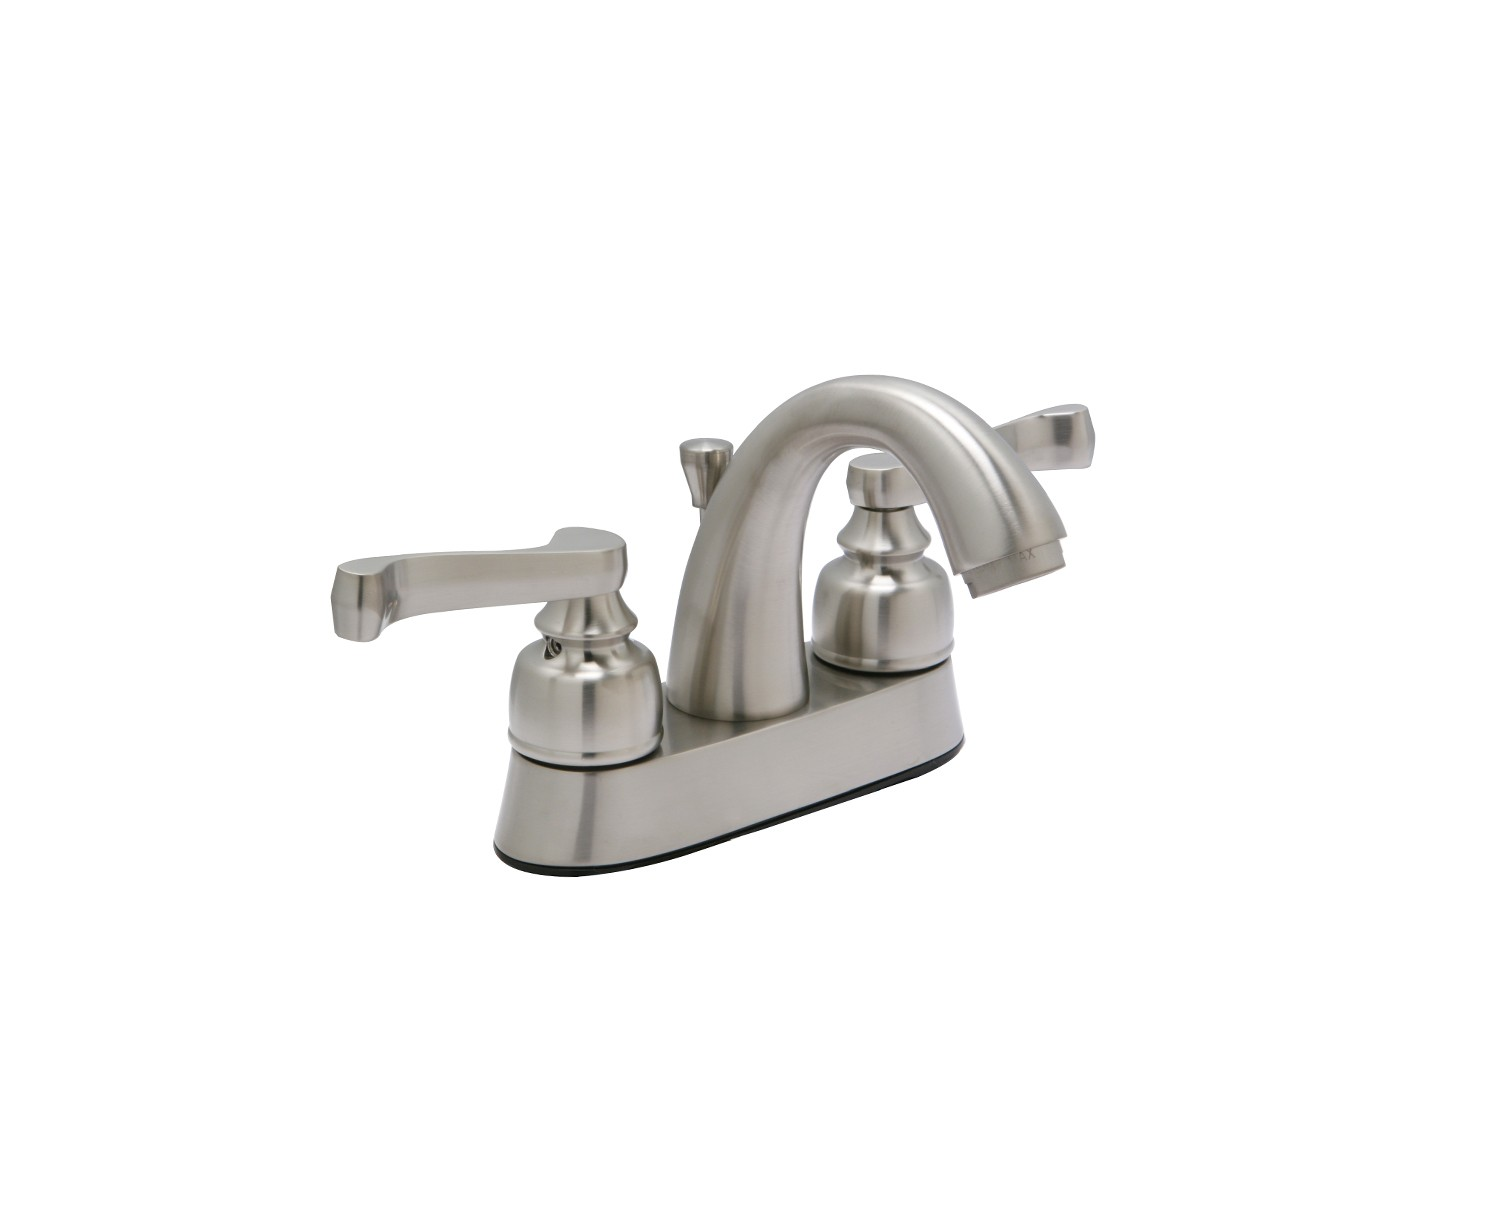 Sienna Center Set Faucet W4420702-1